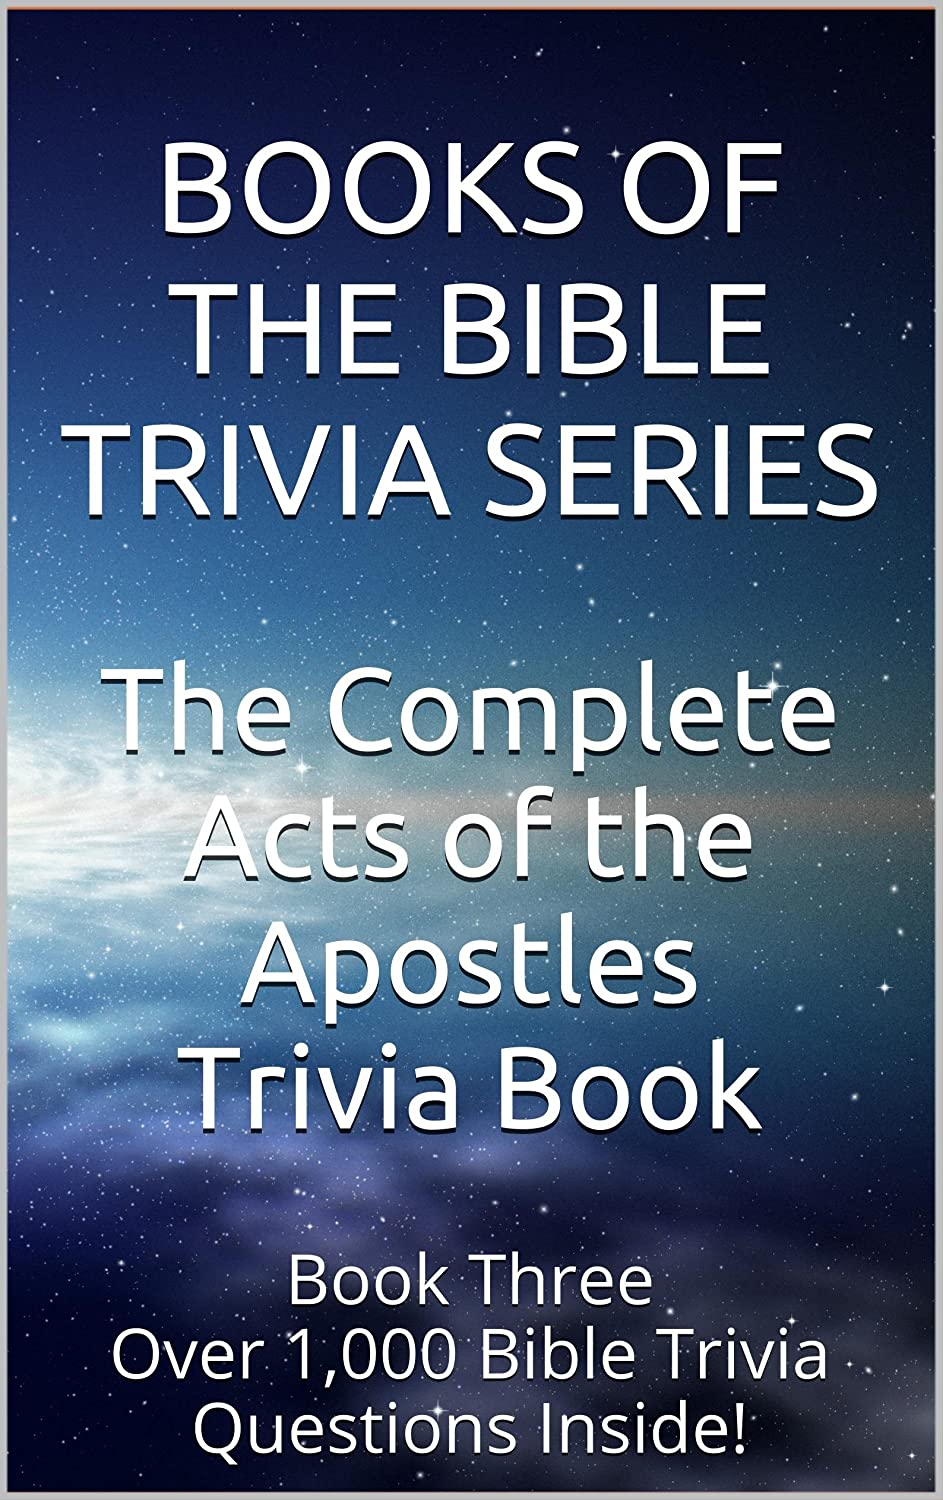 The Complete Acts of the Apostles Trivia Book (Books of the Bible Trivia Series Book 3) by Tyra Buburuz